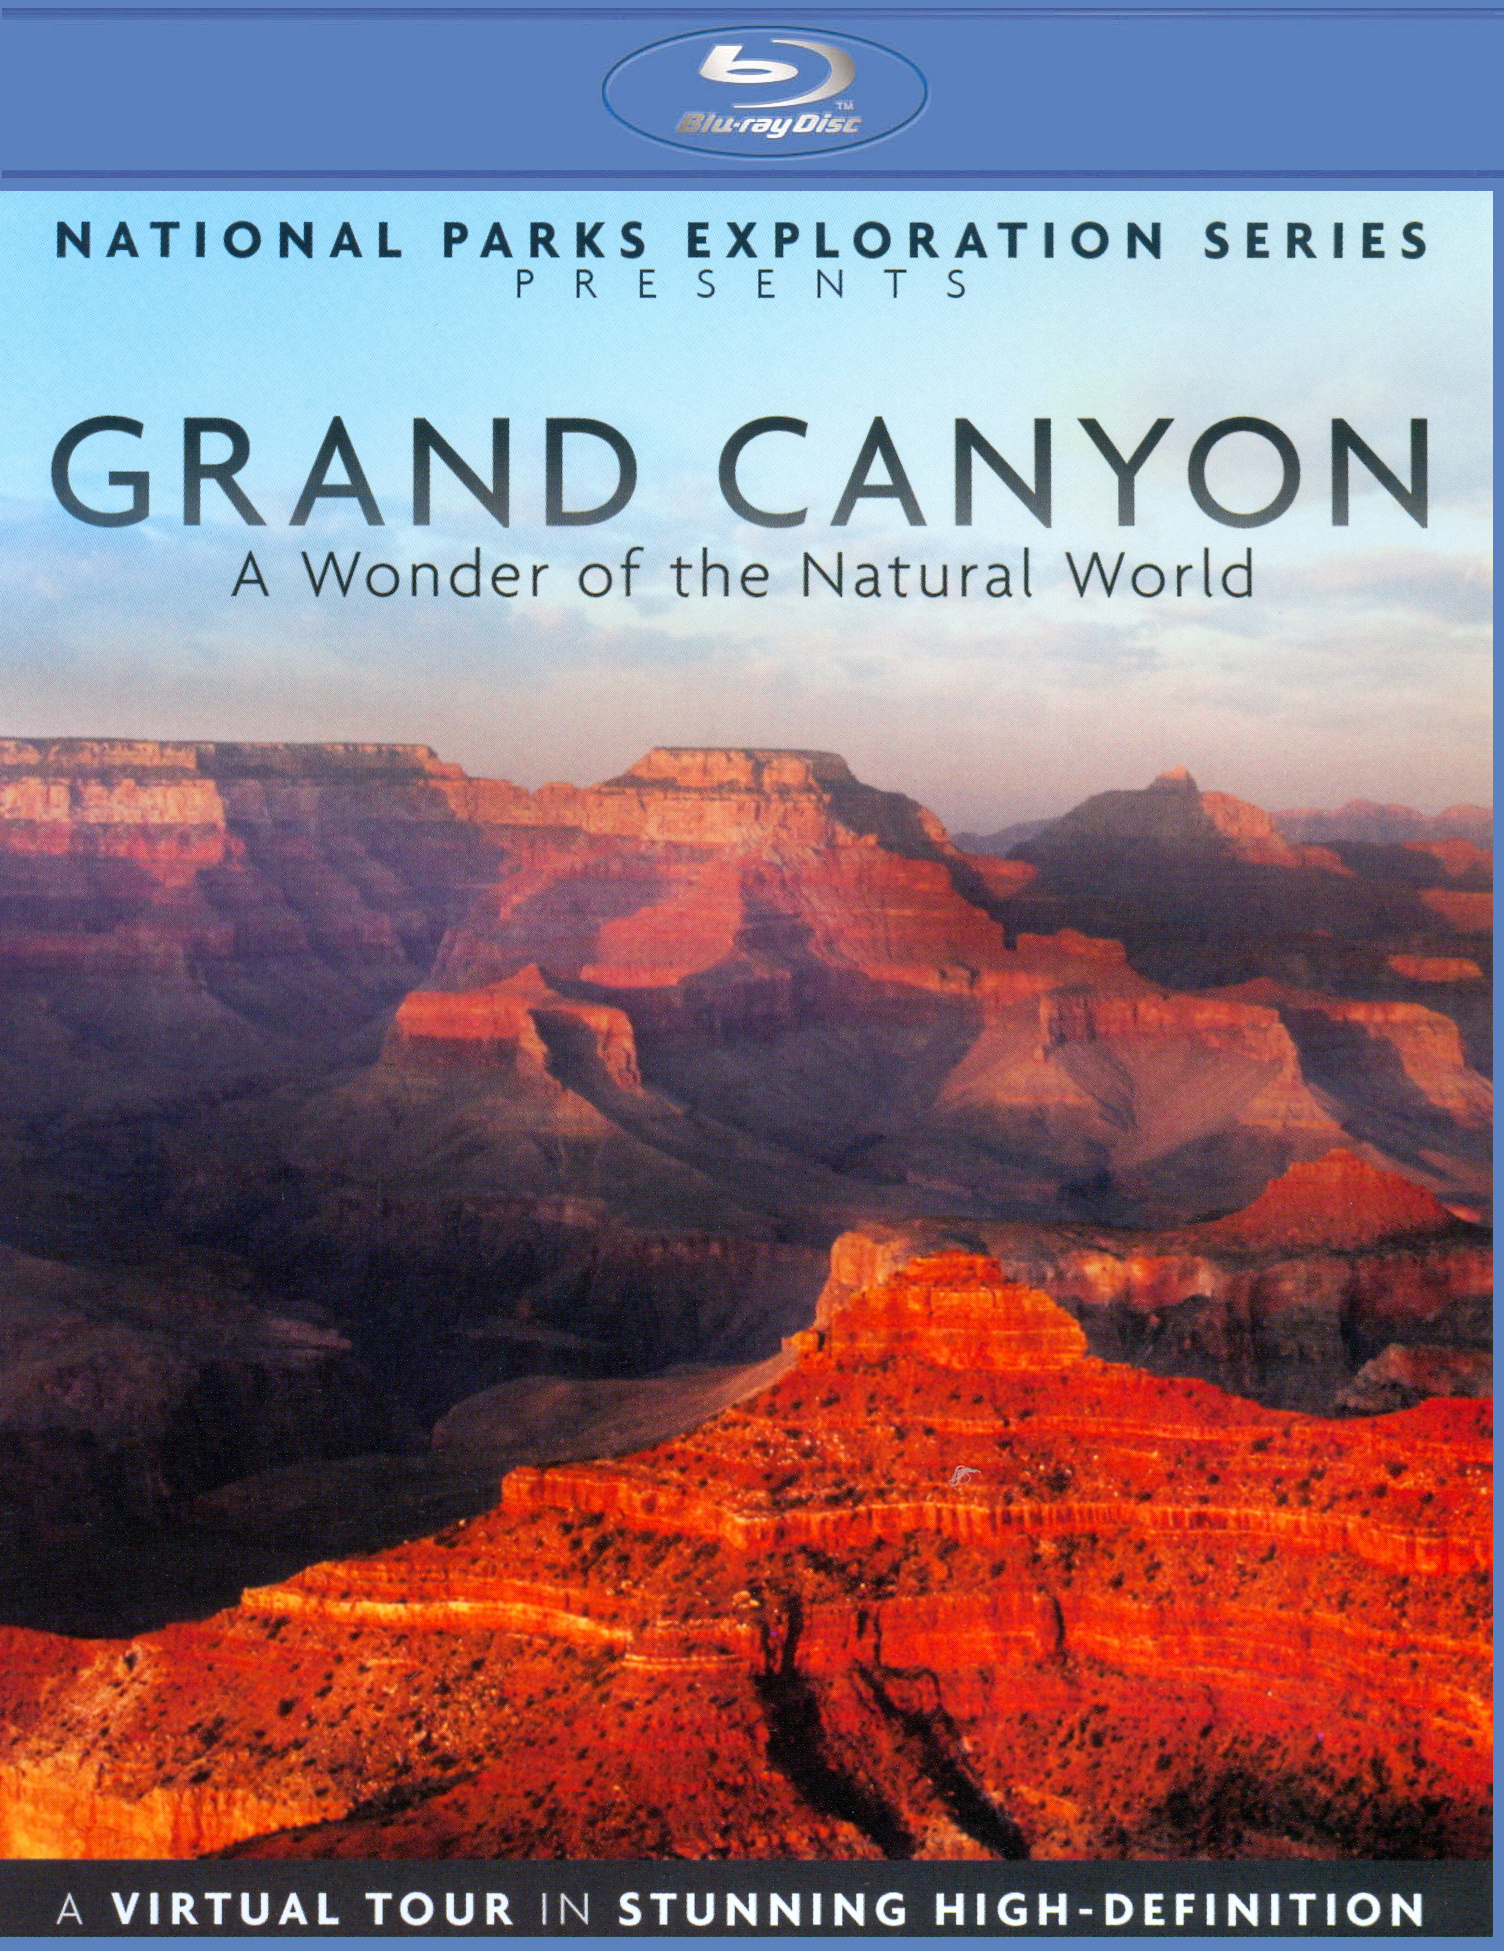 Grand Canyon: A Wonder of the Natural World